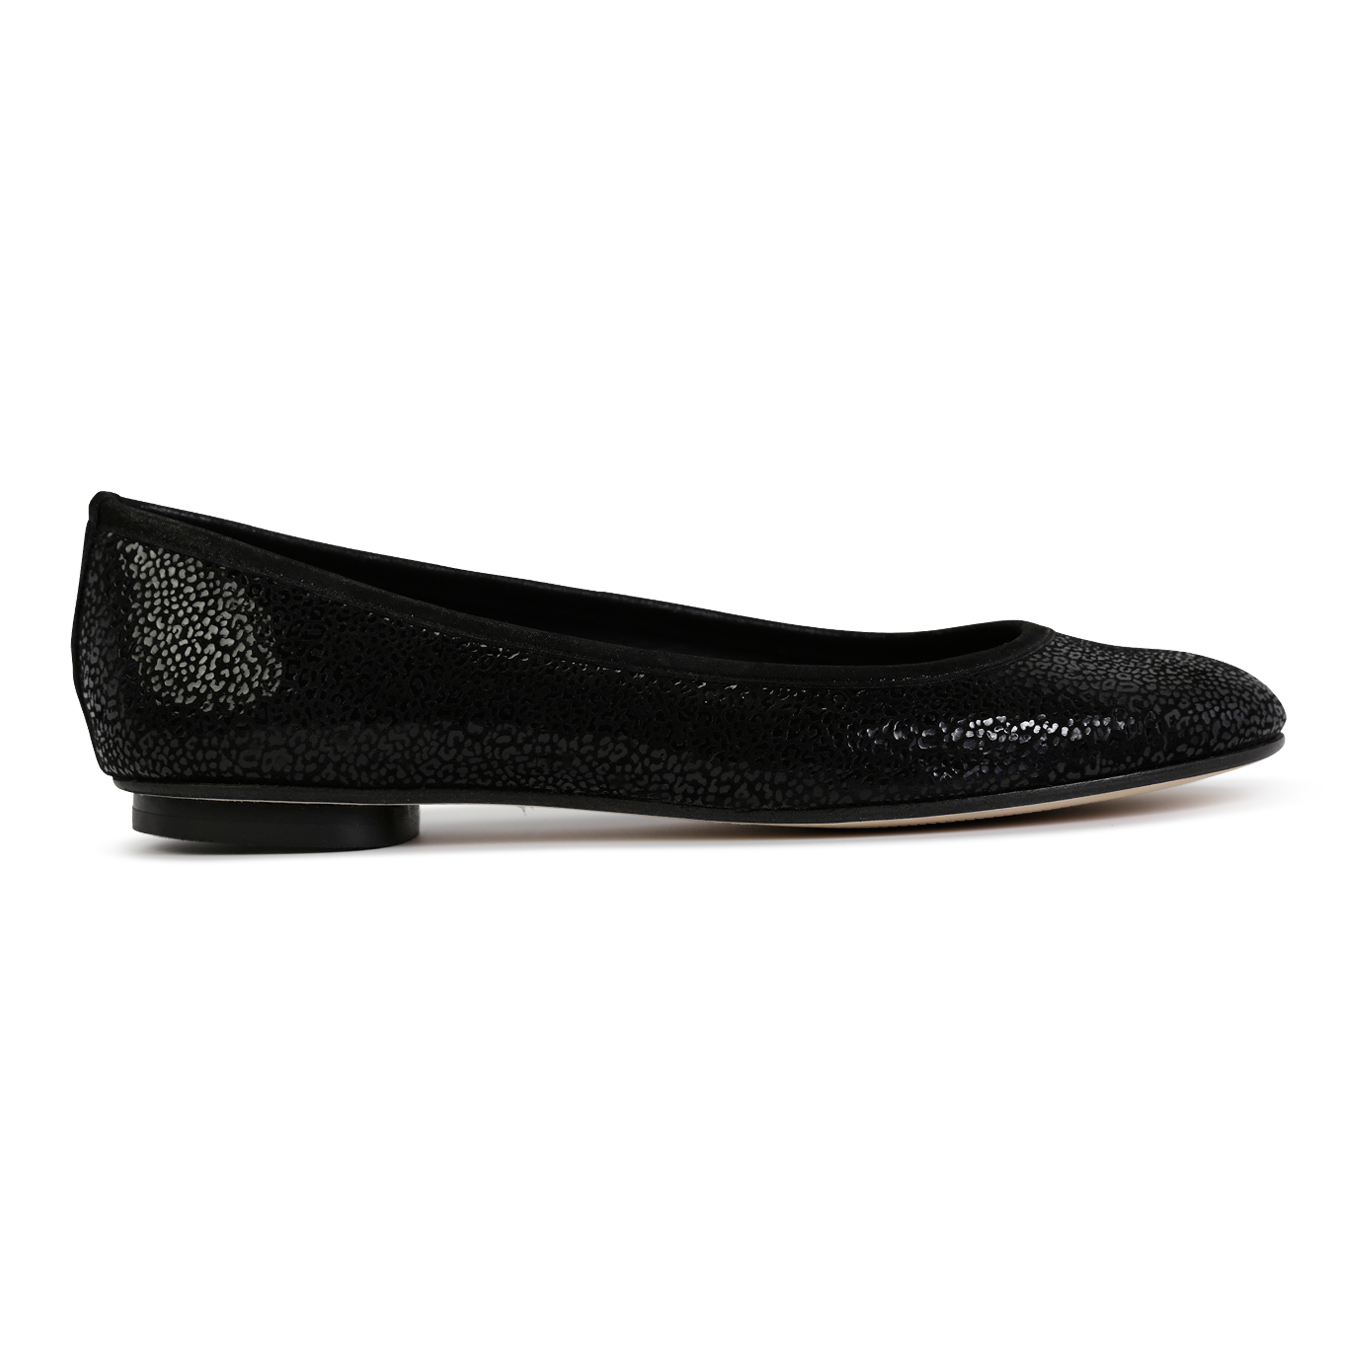 VENEZIA - Savannah Nero + Hydra Trim, VIAJIYU - Women's Hand Made Sustainable Luxury Shoes. Made in Italy. Made to Order.